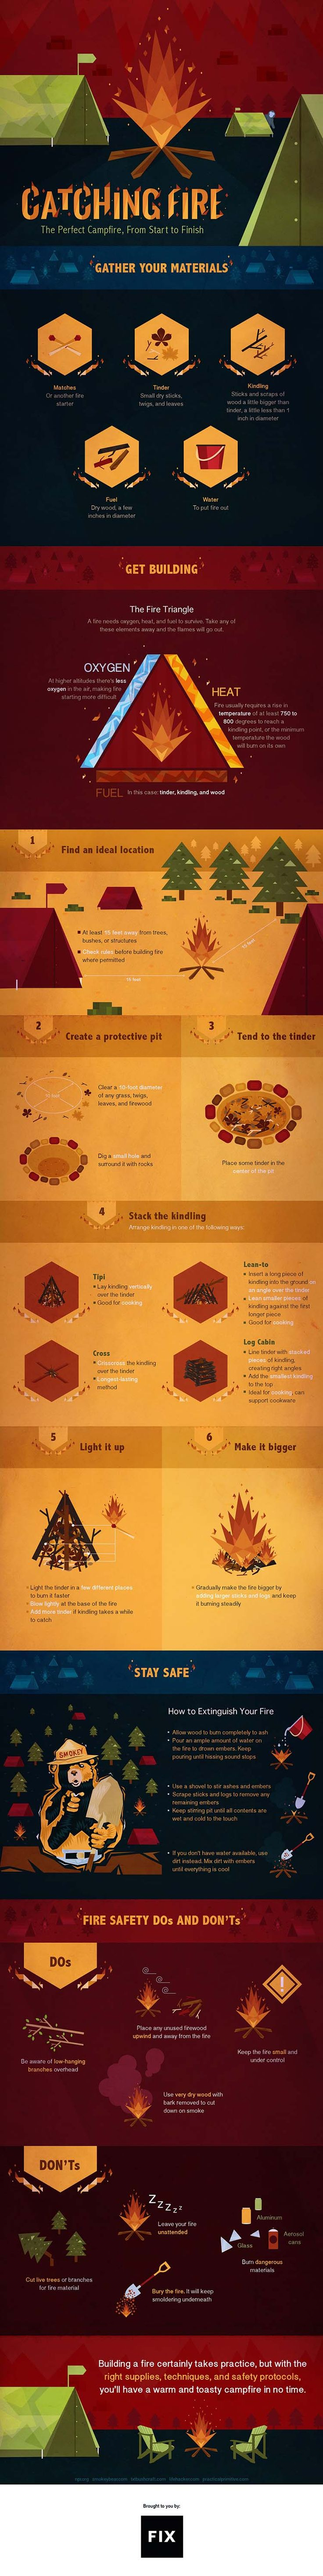 Build a Fire the Right Way | Fire Safety Do's And Dont's by Survival Life at http://survivallife.com/build-a-fire-the-right-way/